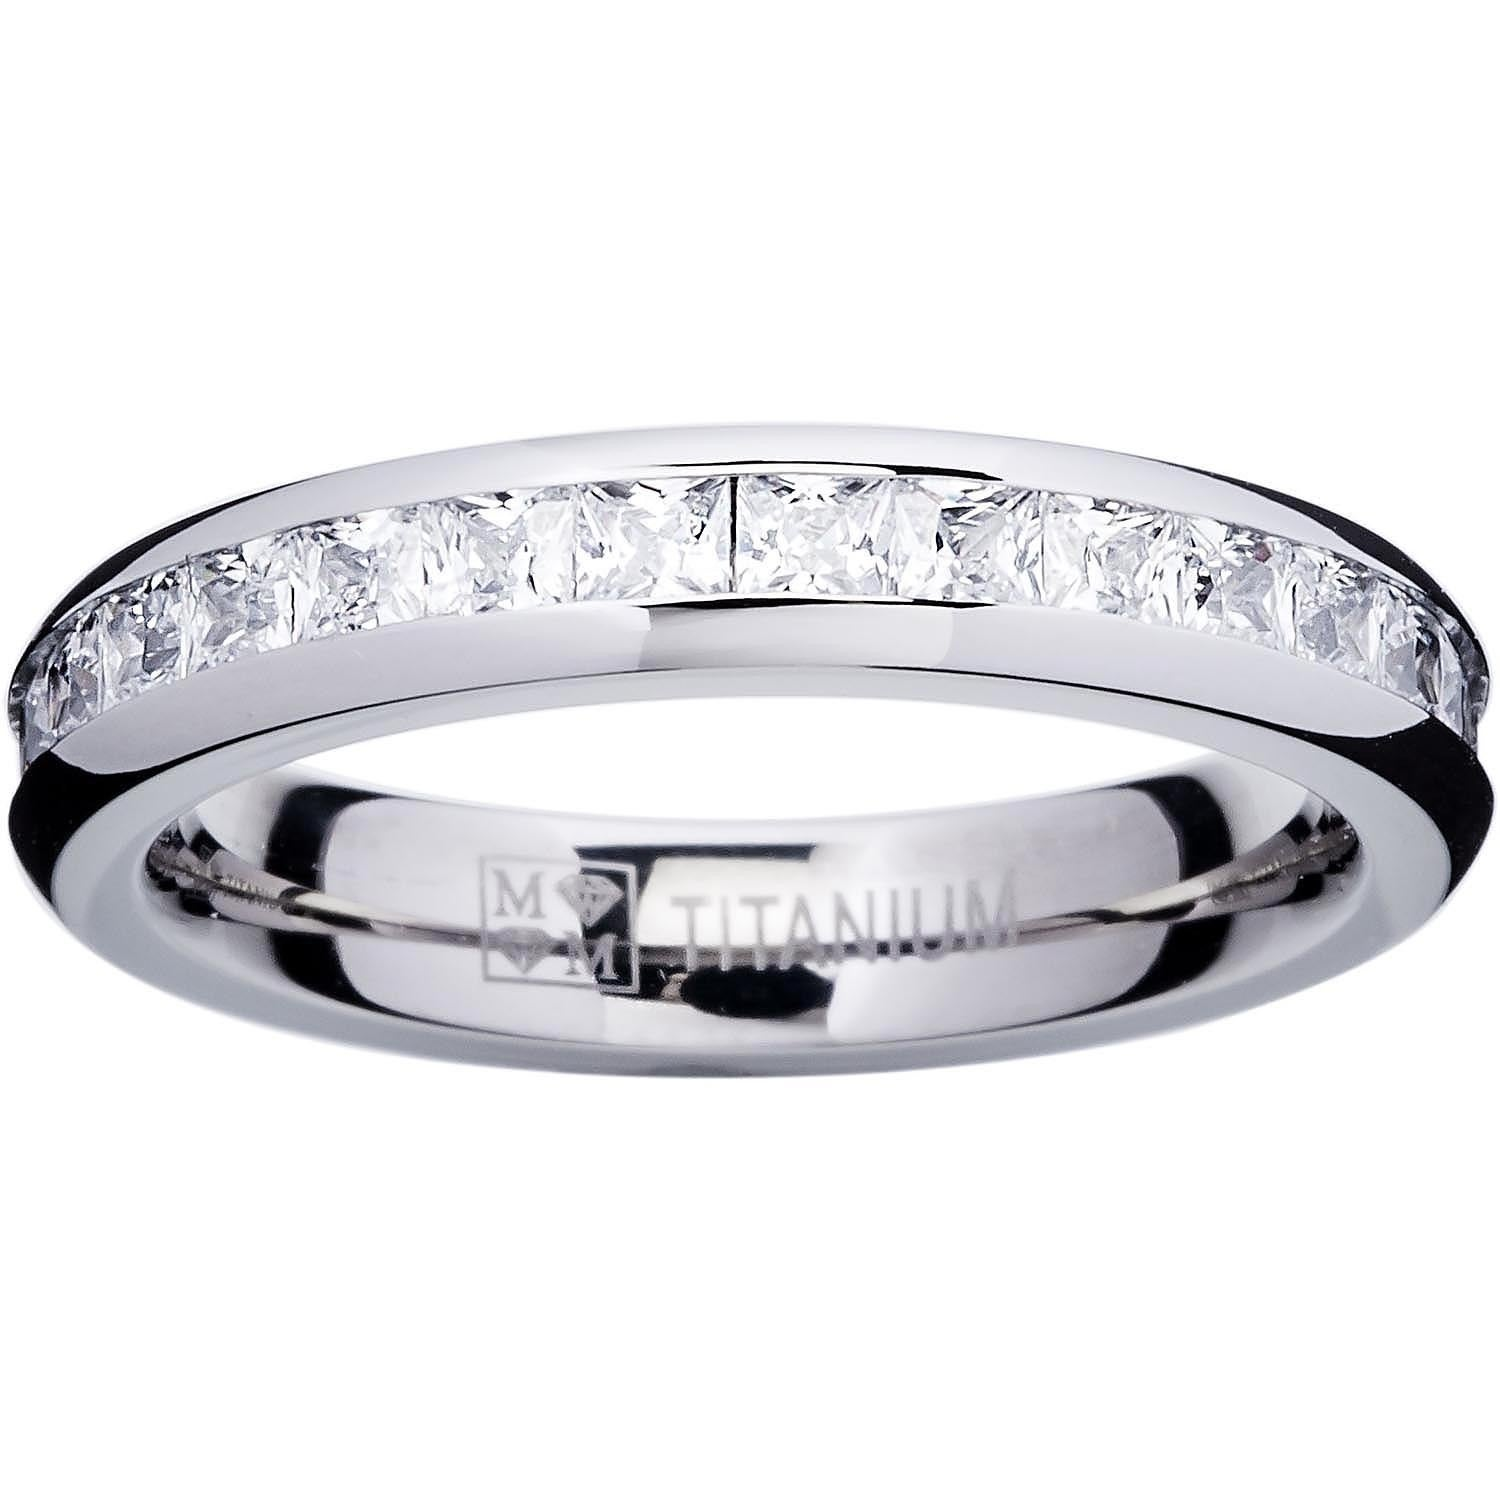 anniversary cocktail wide ring carat sparkles plated eternity cut zirconia faux silvertone cz tier ina products beloved bands diamond band wedding round cubic silver rhodium